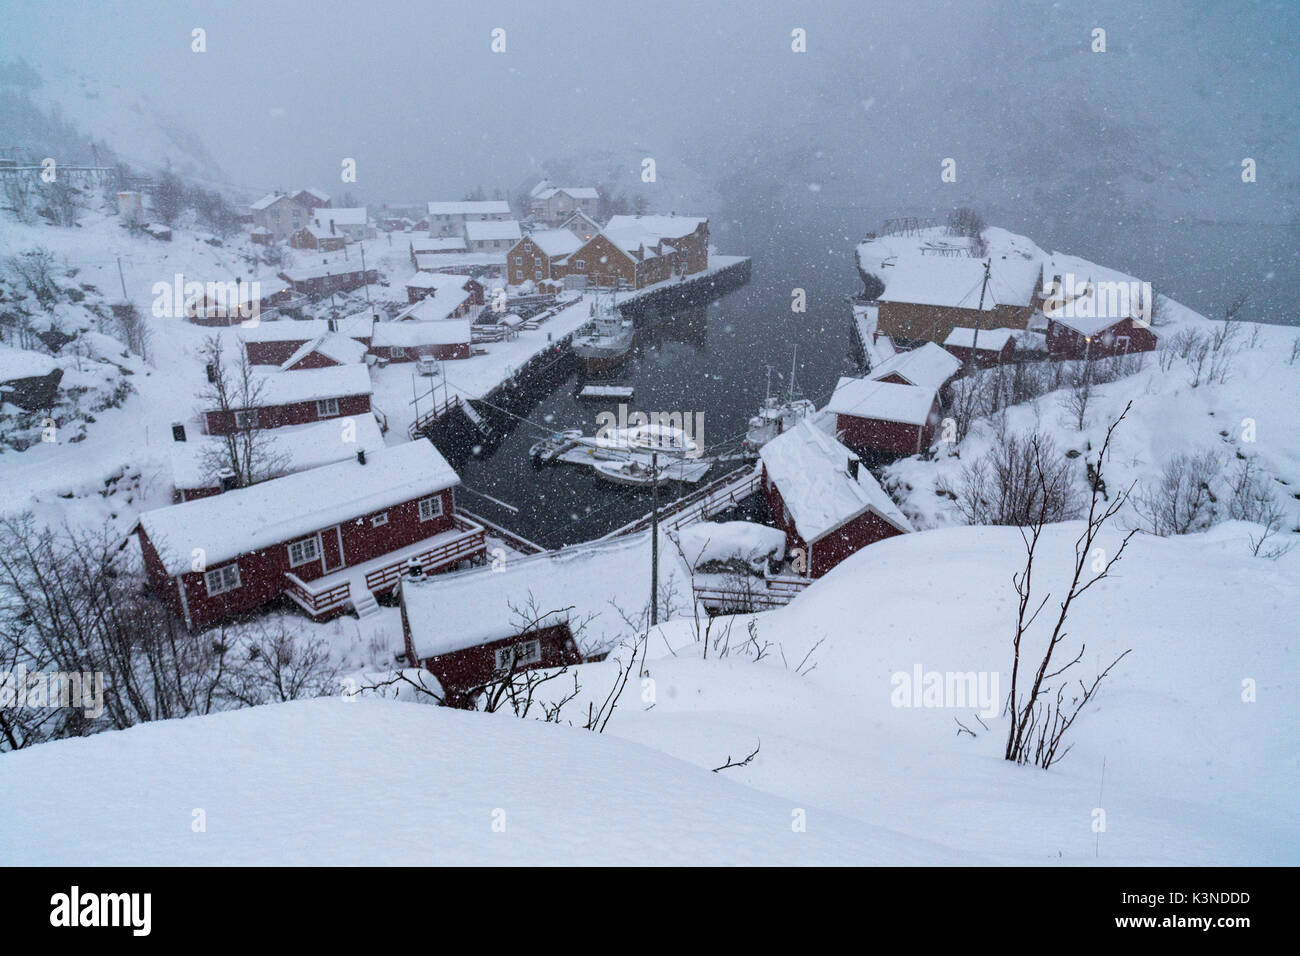 View looking down to snow covered houses in Nusfjord fishing village, Lofoten Islands, Norway - Stock Image